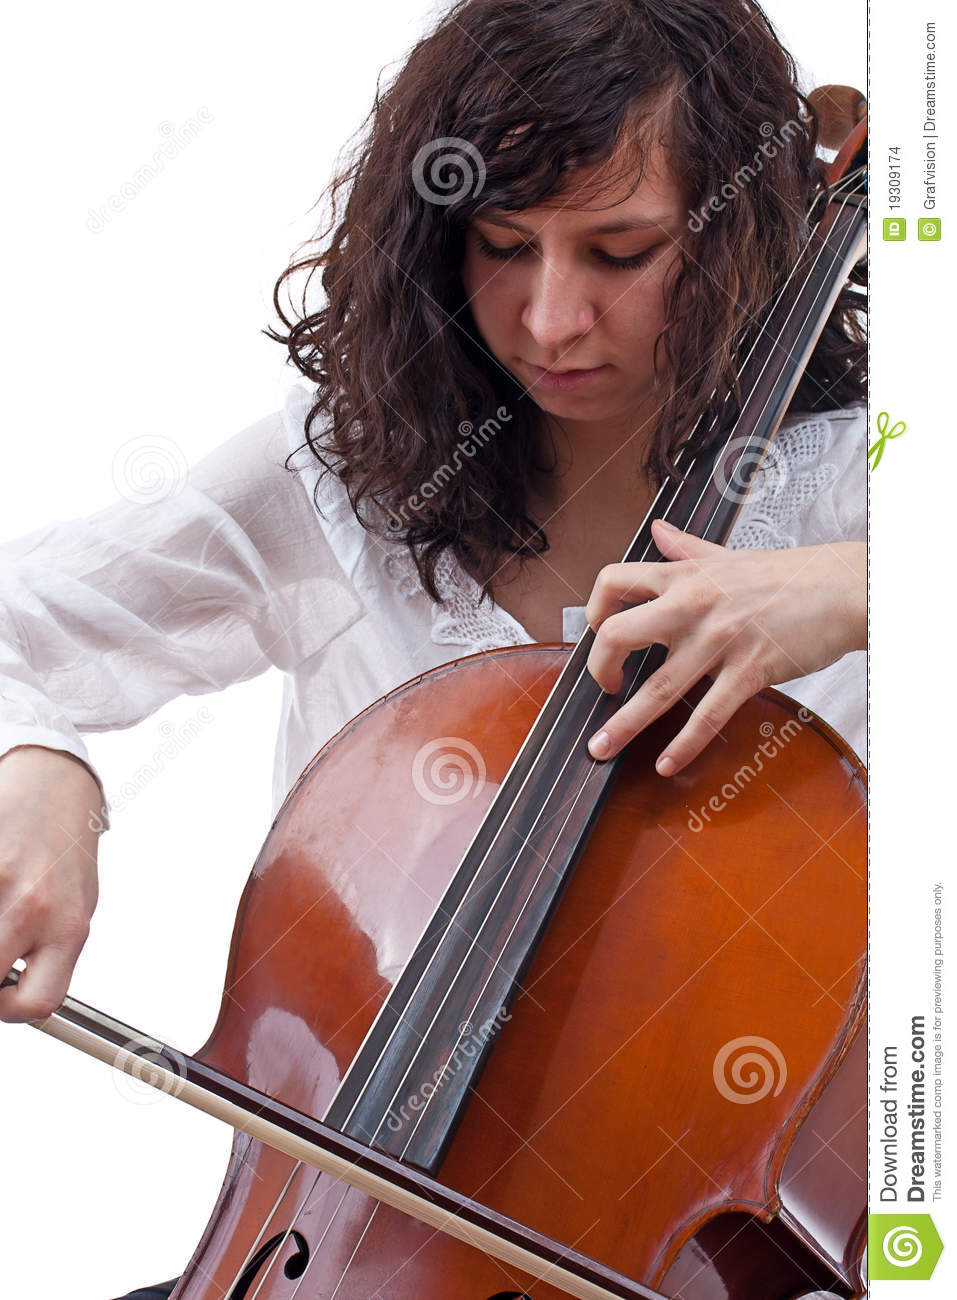 Girl playing cello stock photo. Image of hand, brown ...